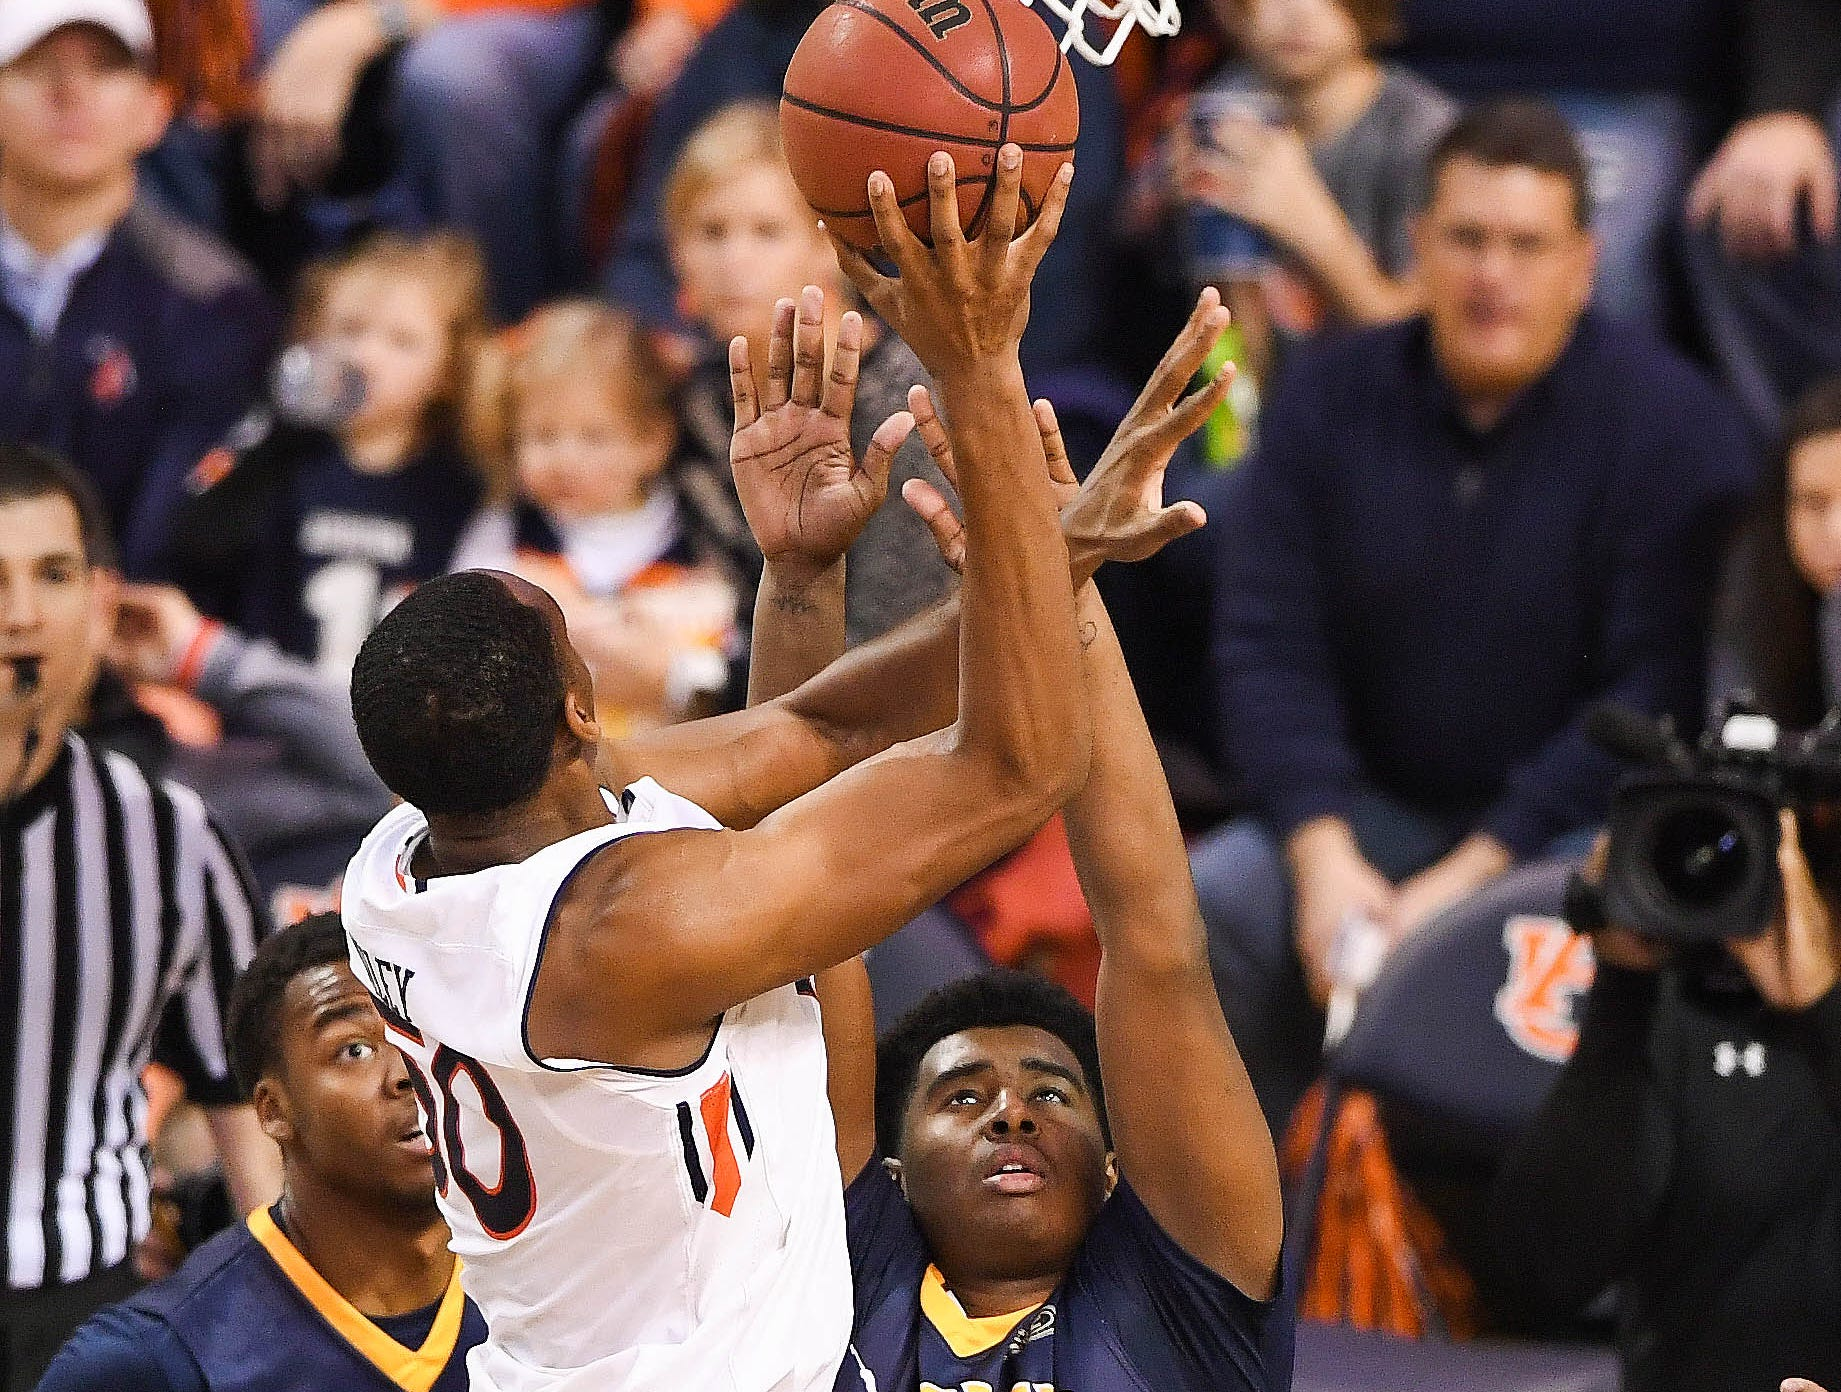 Dec 22, 2018; Auburn, AL, USA; Murray State Racers forward Darnell Cowart (32) defends Auburn Tigers center Austin Wiley (50) at the net during the second half at Auburn Arena. Mandatory Credit: Shanna Lockwood-USA TODAY Sports